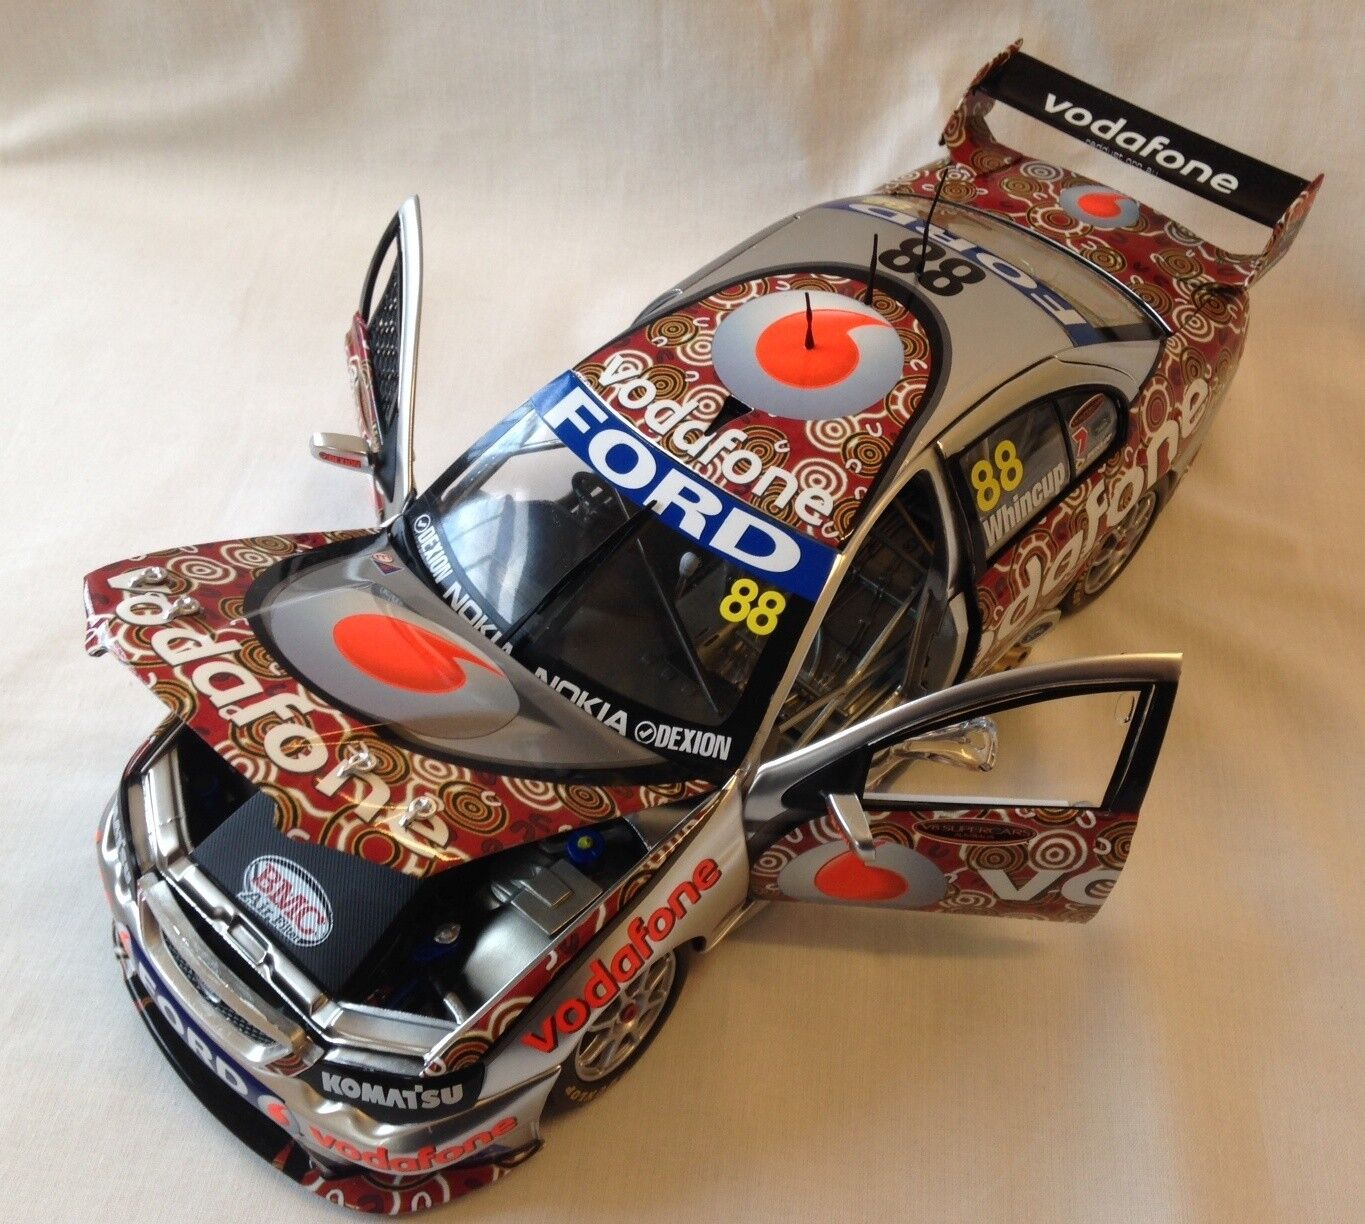 2008 JAMIE WHINCUP RED DUST DARWIN LIVERY VODAFONE 1 18 DIE CAST MODEL CAR